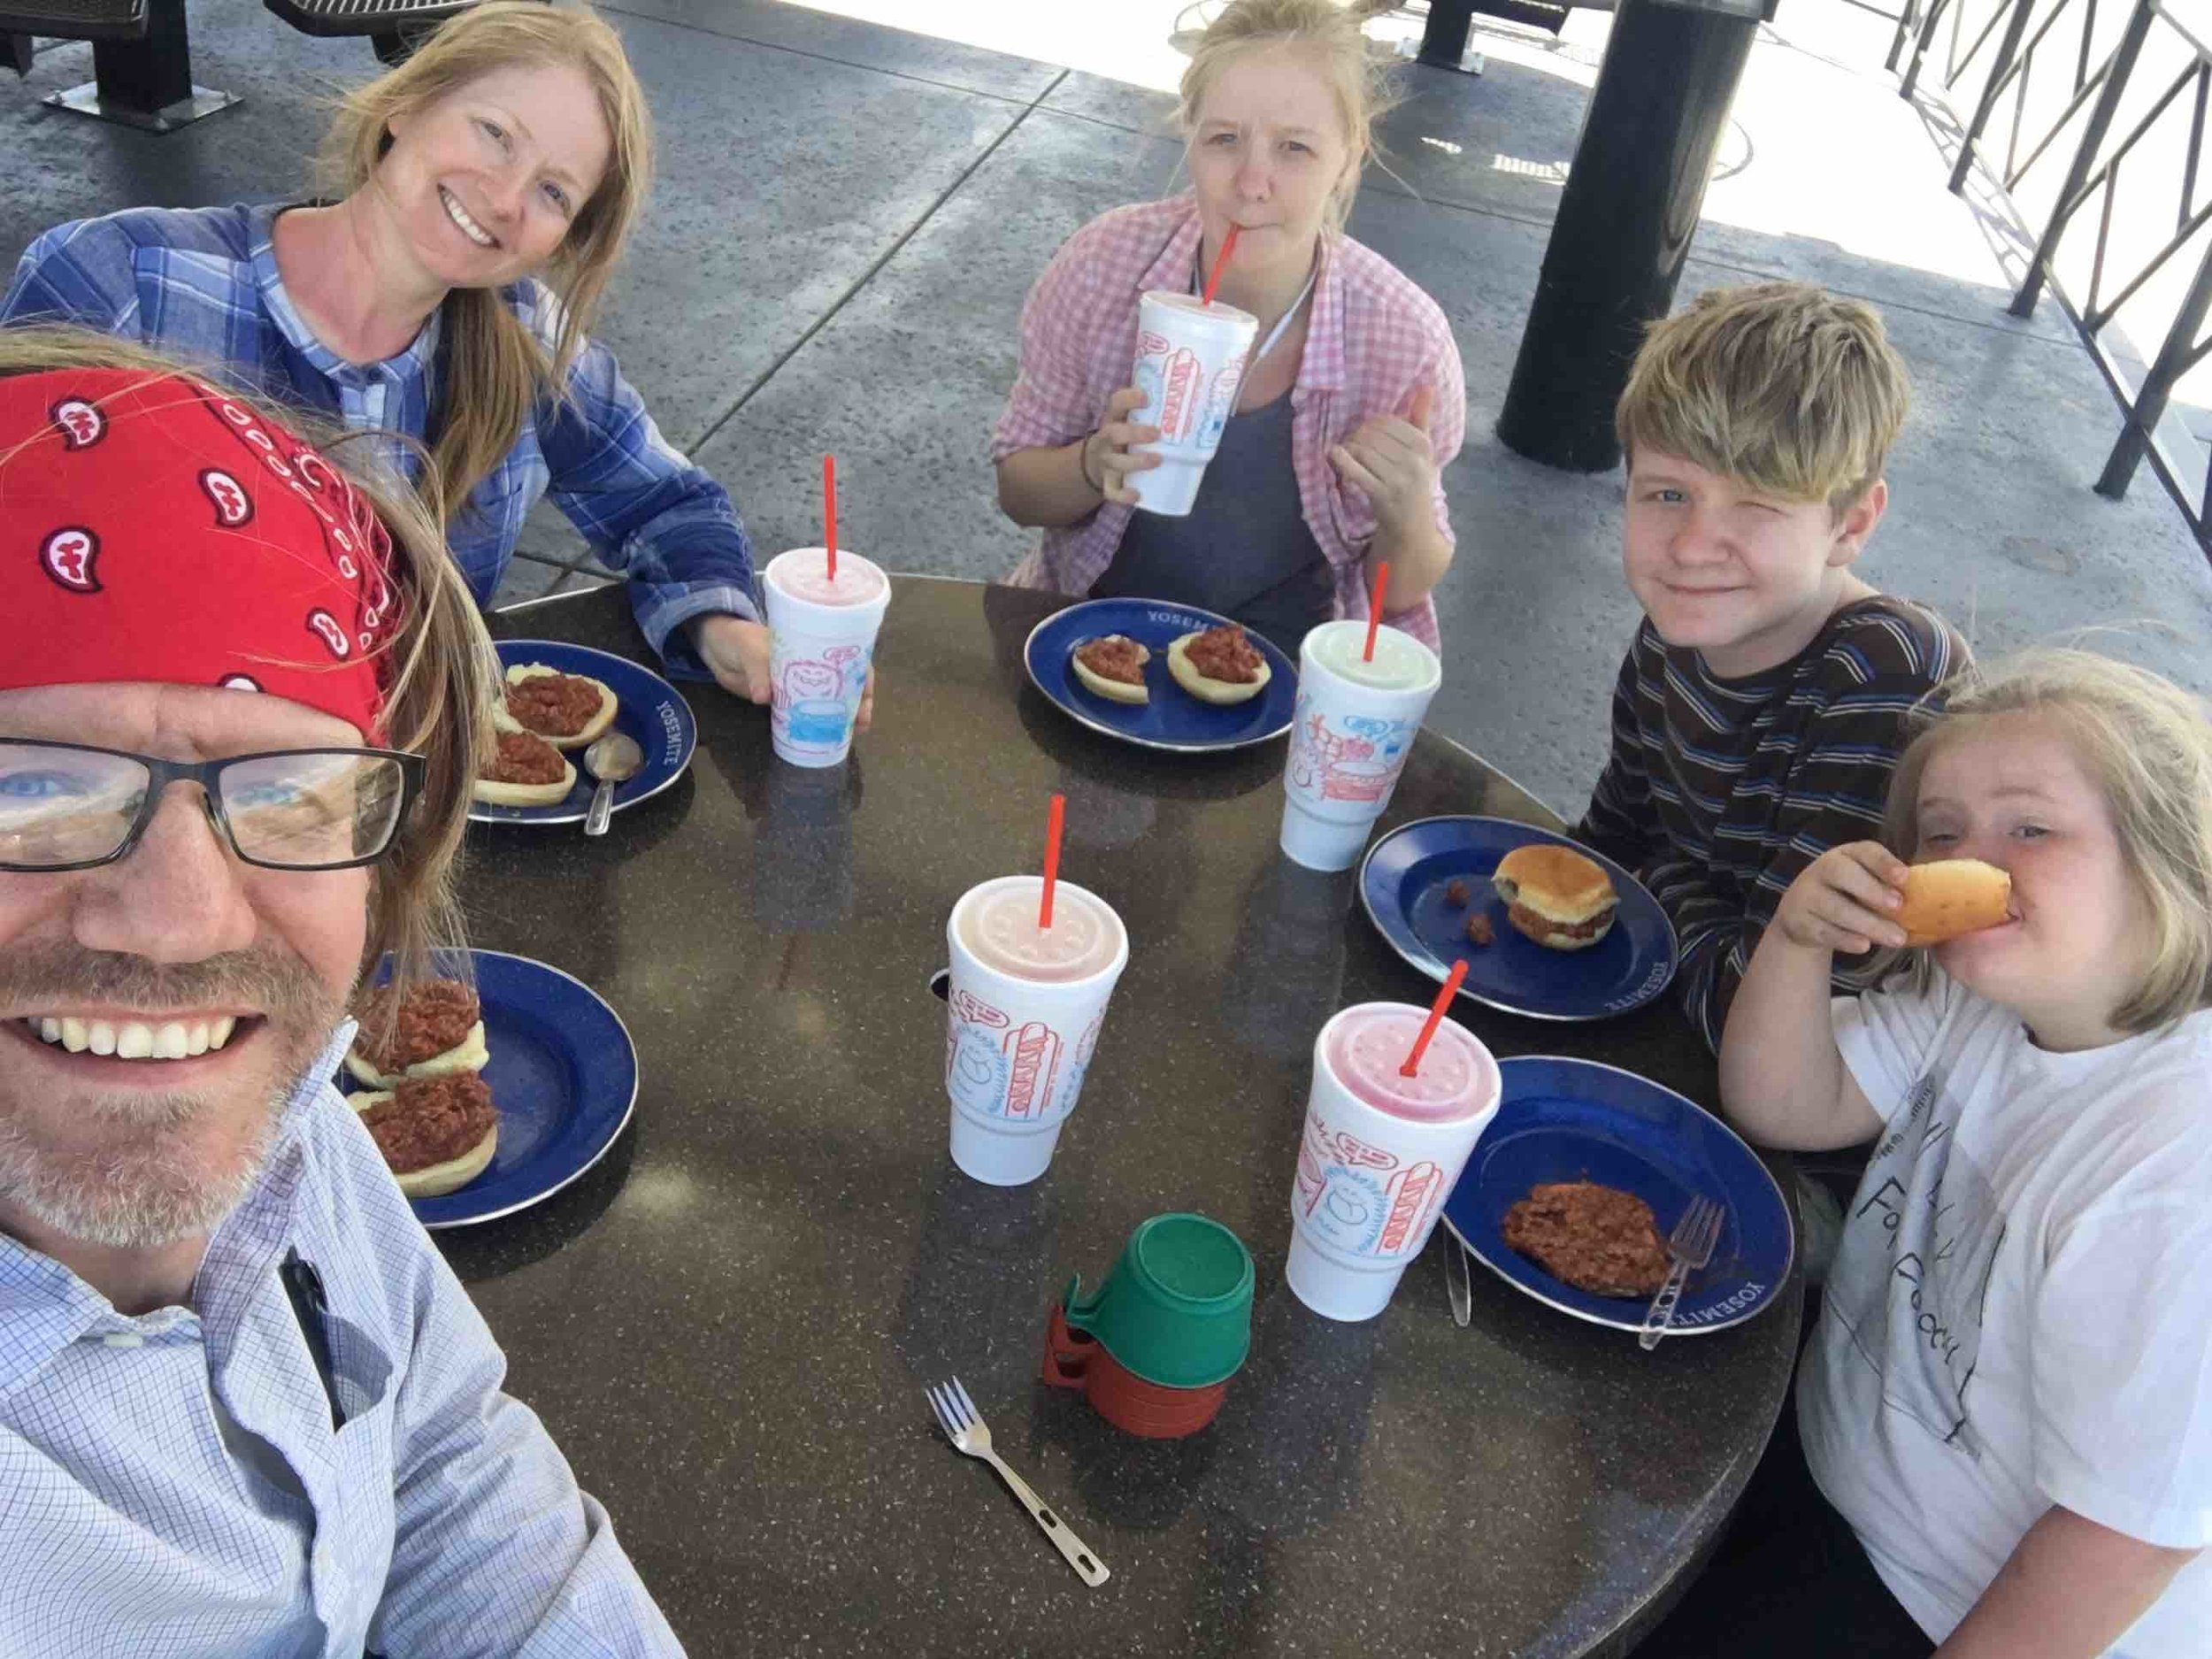 After a couple hot days in the sun, we discovered Sonic's slushy menu. (But we brought our own sloppy Joes : )